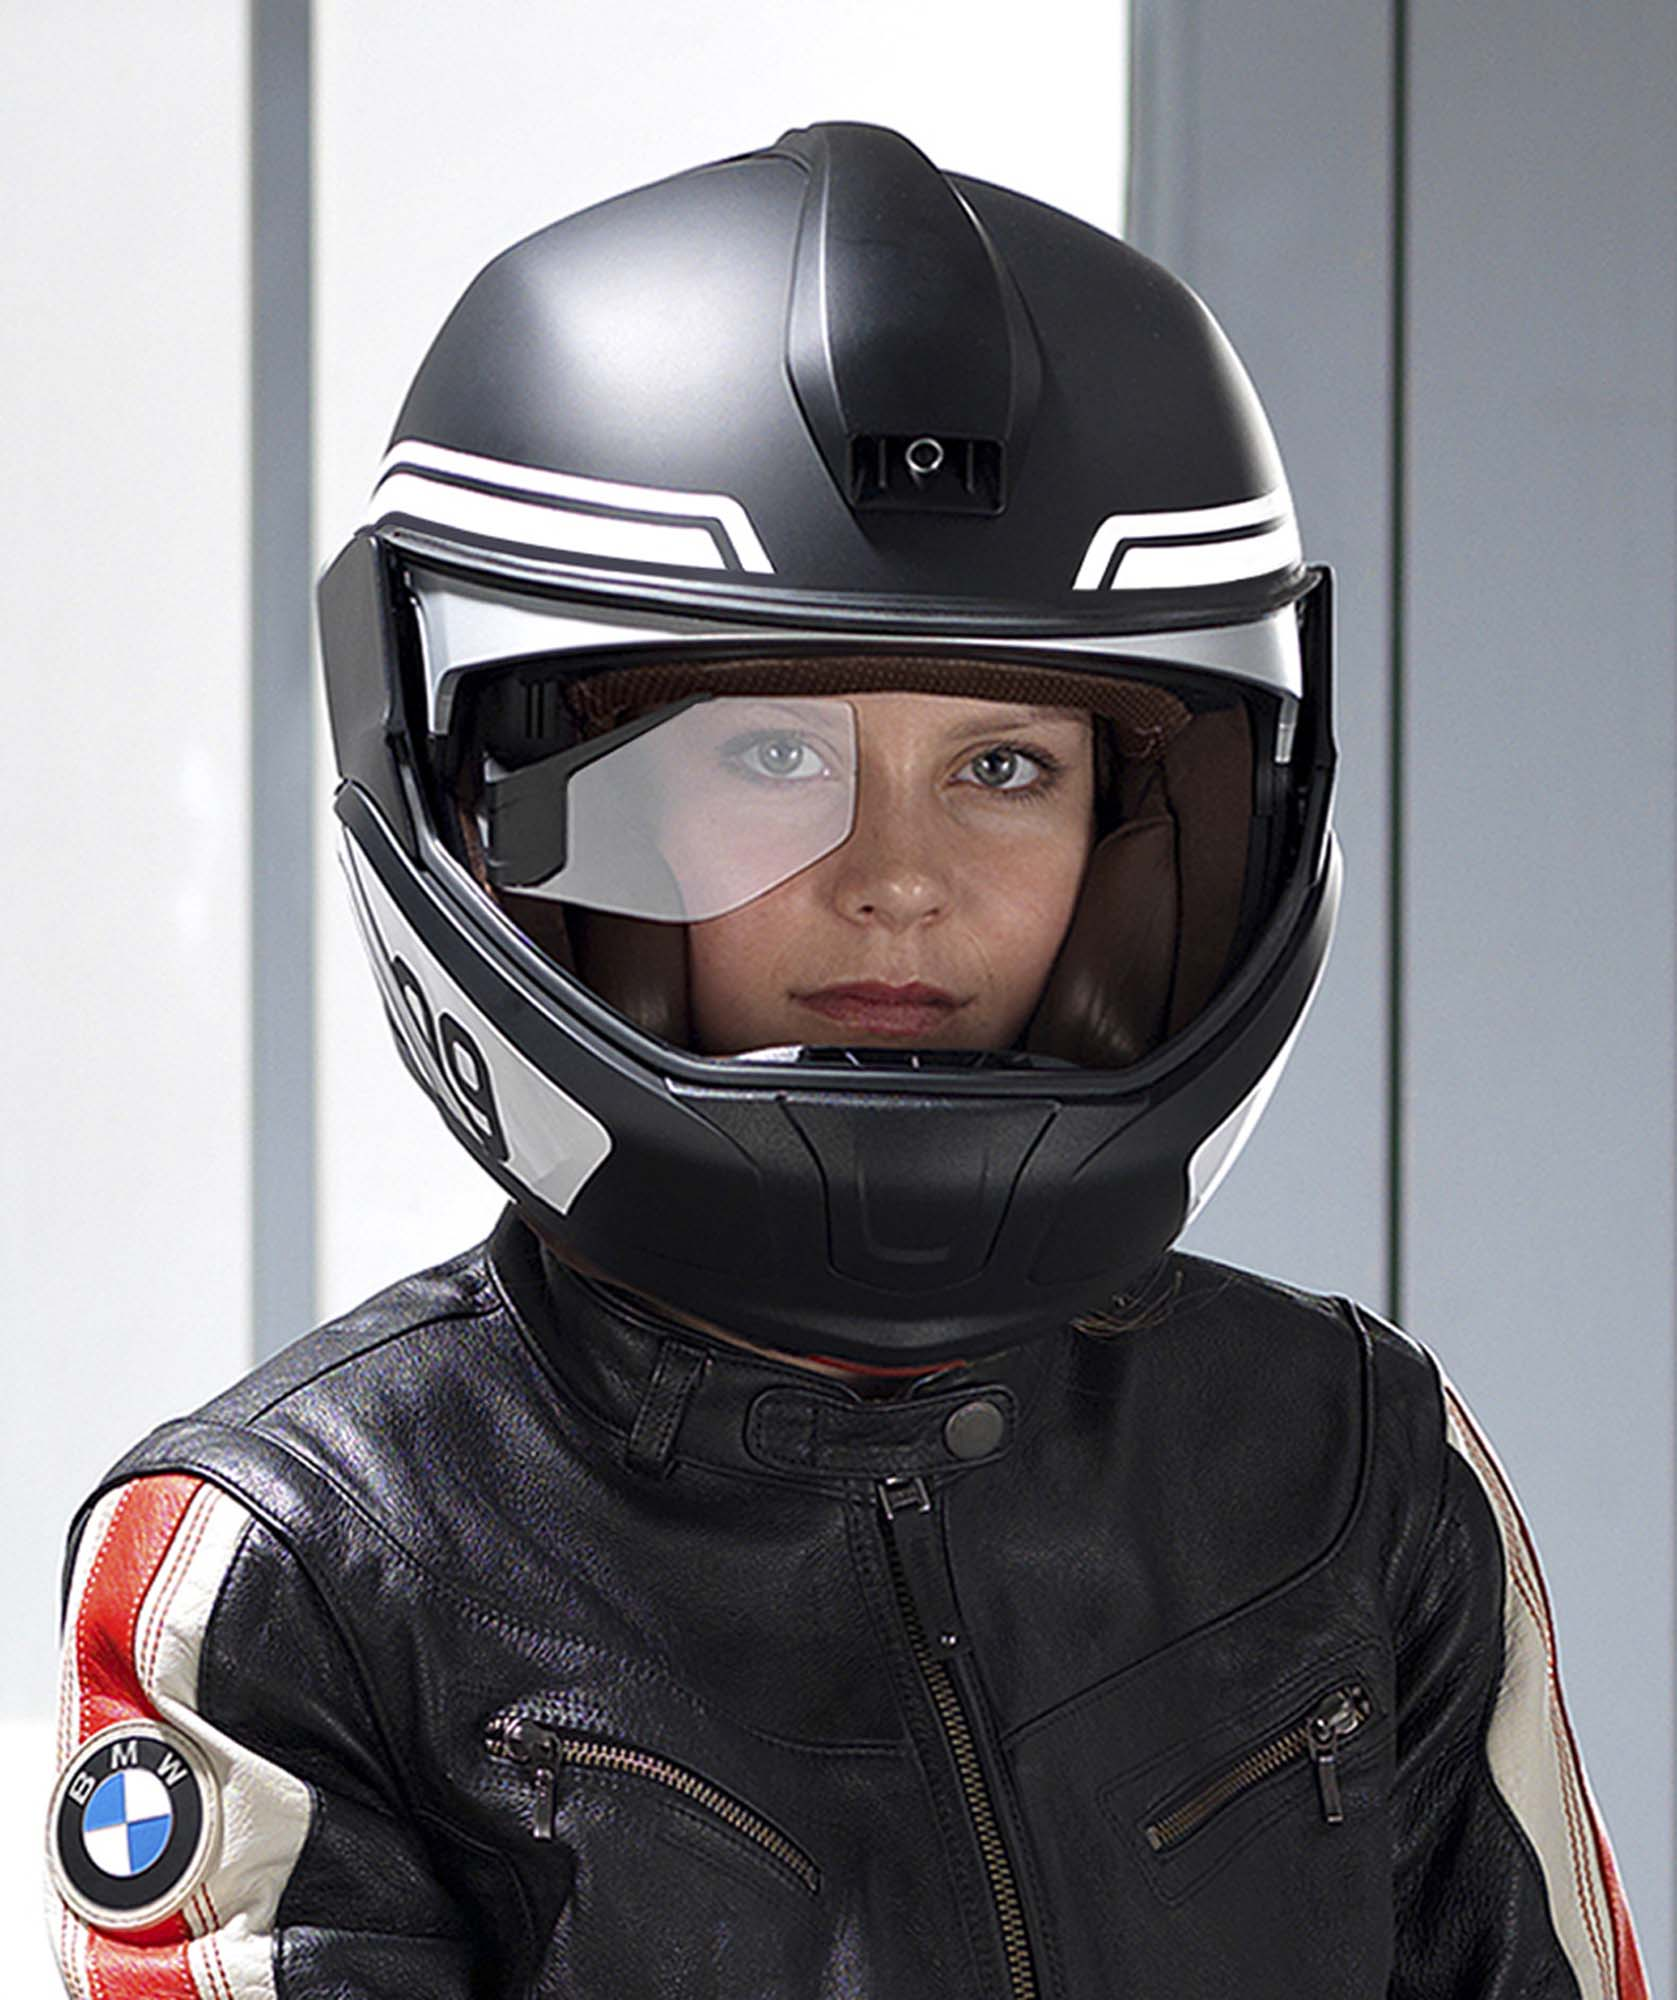 bmw developing hud motorcycle helmet. Black Bedroom Furniture Sets. Home Design Ideas